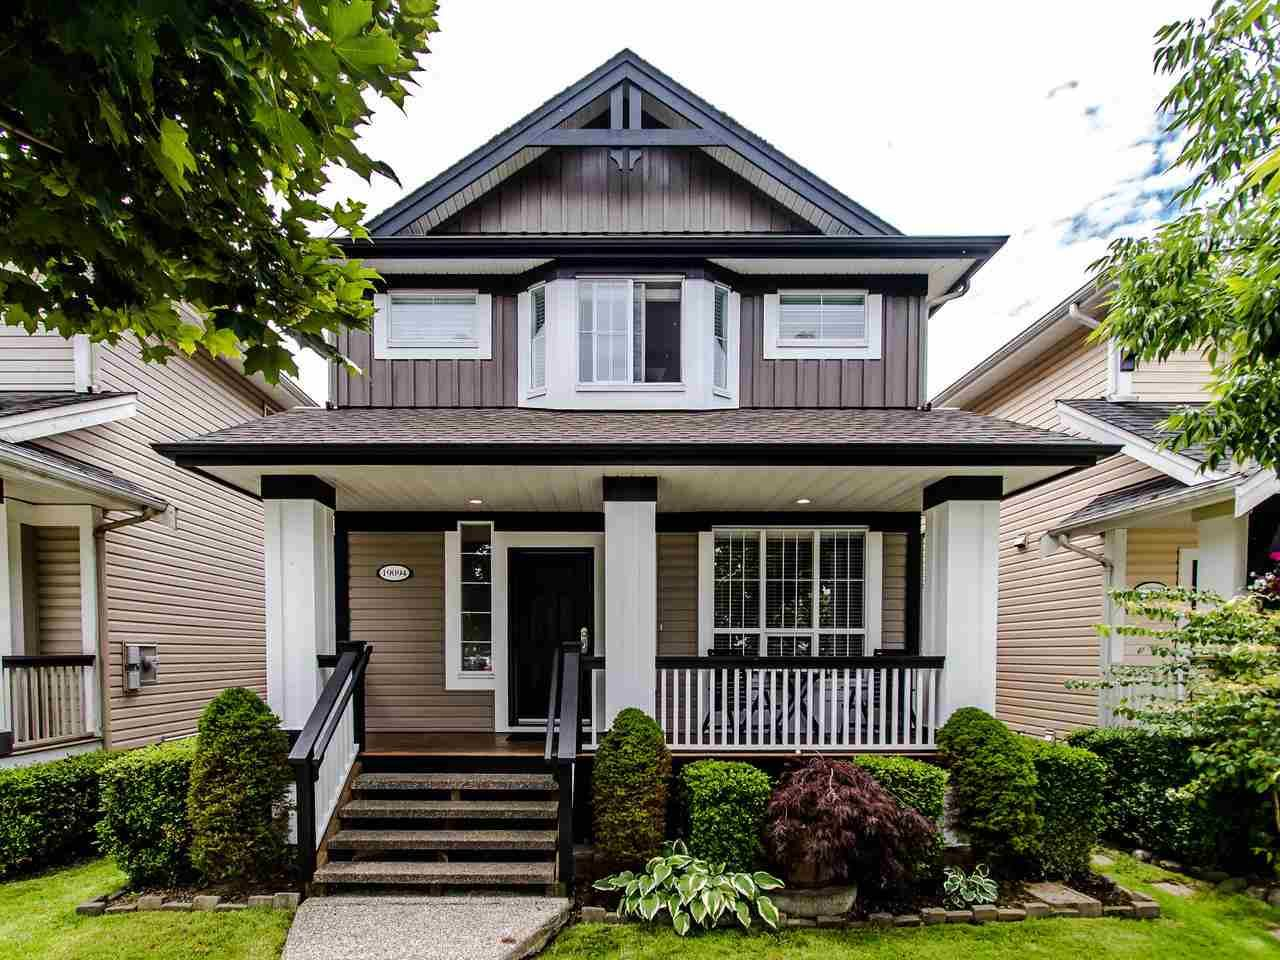 """Main Photo: 19094 70 Avenue in Surrey: Clayton House for sale in """"CLAYTON"""" (Cloverdale)  : MLS®# R2472956"""